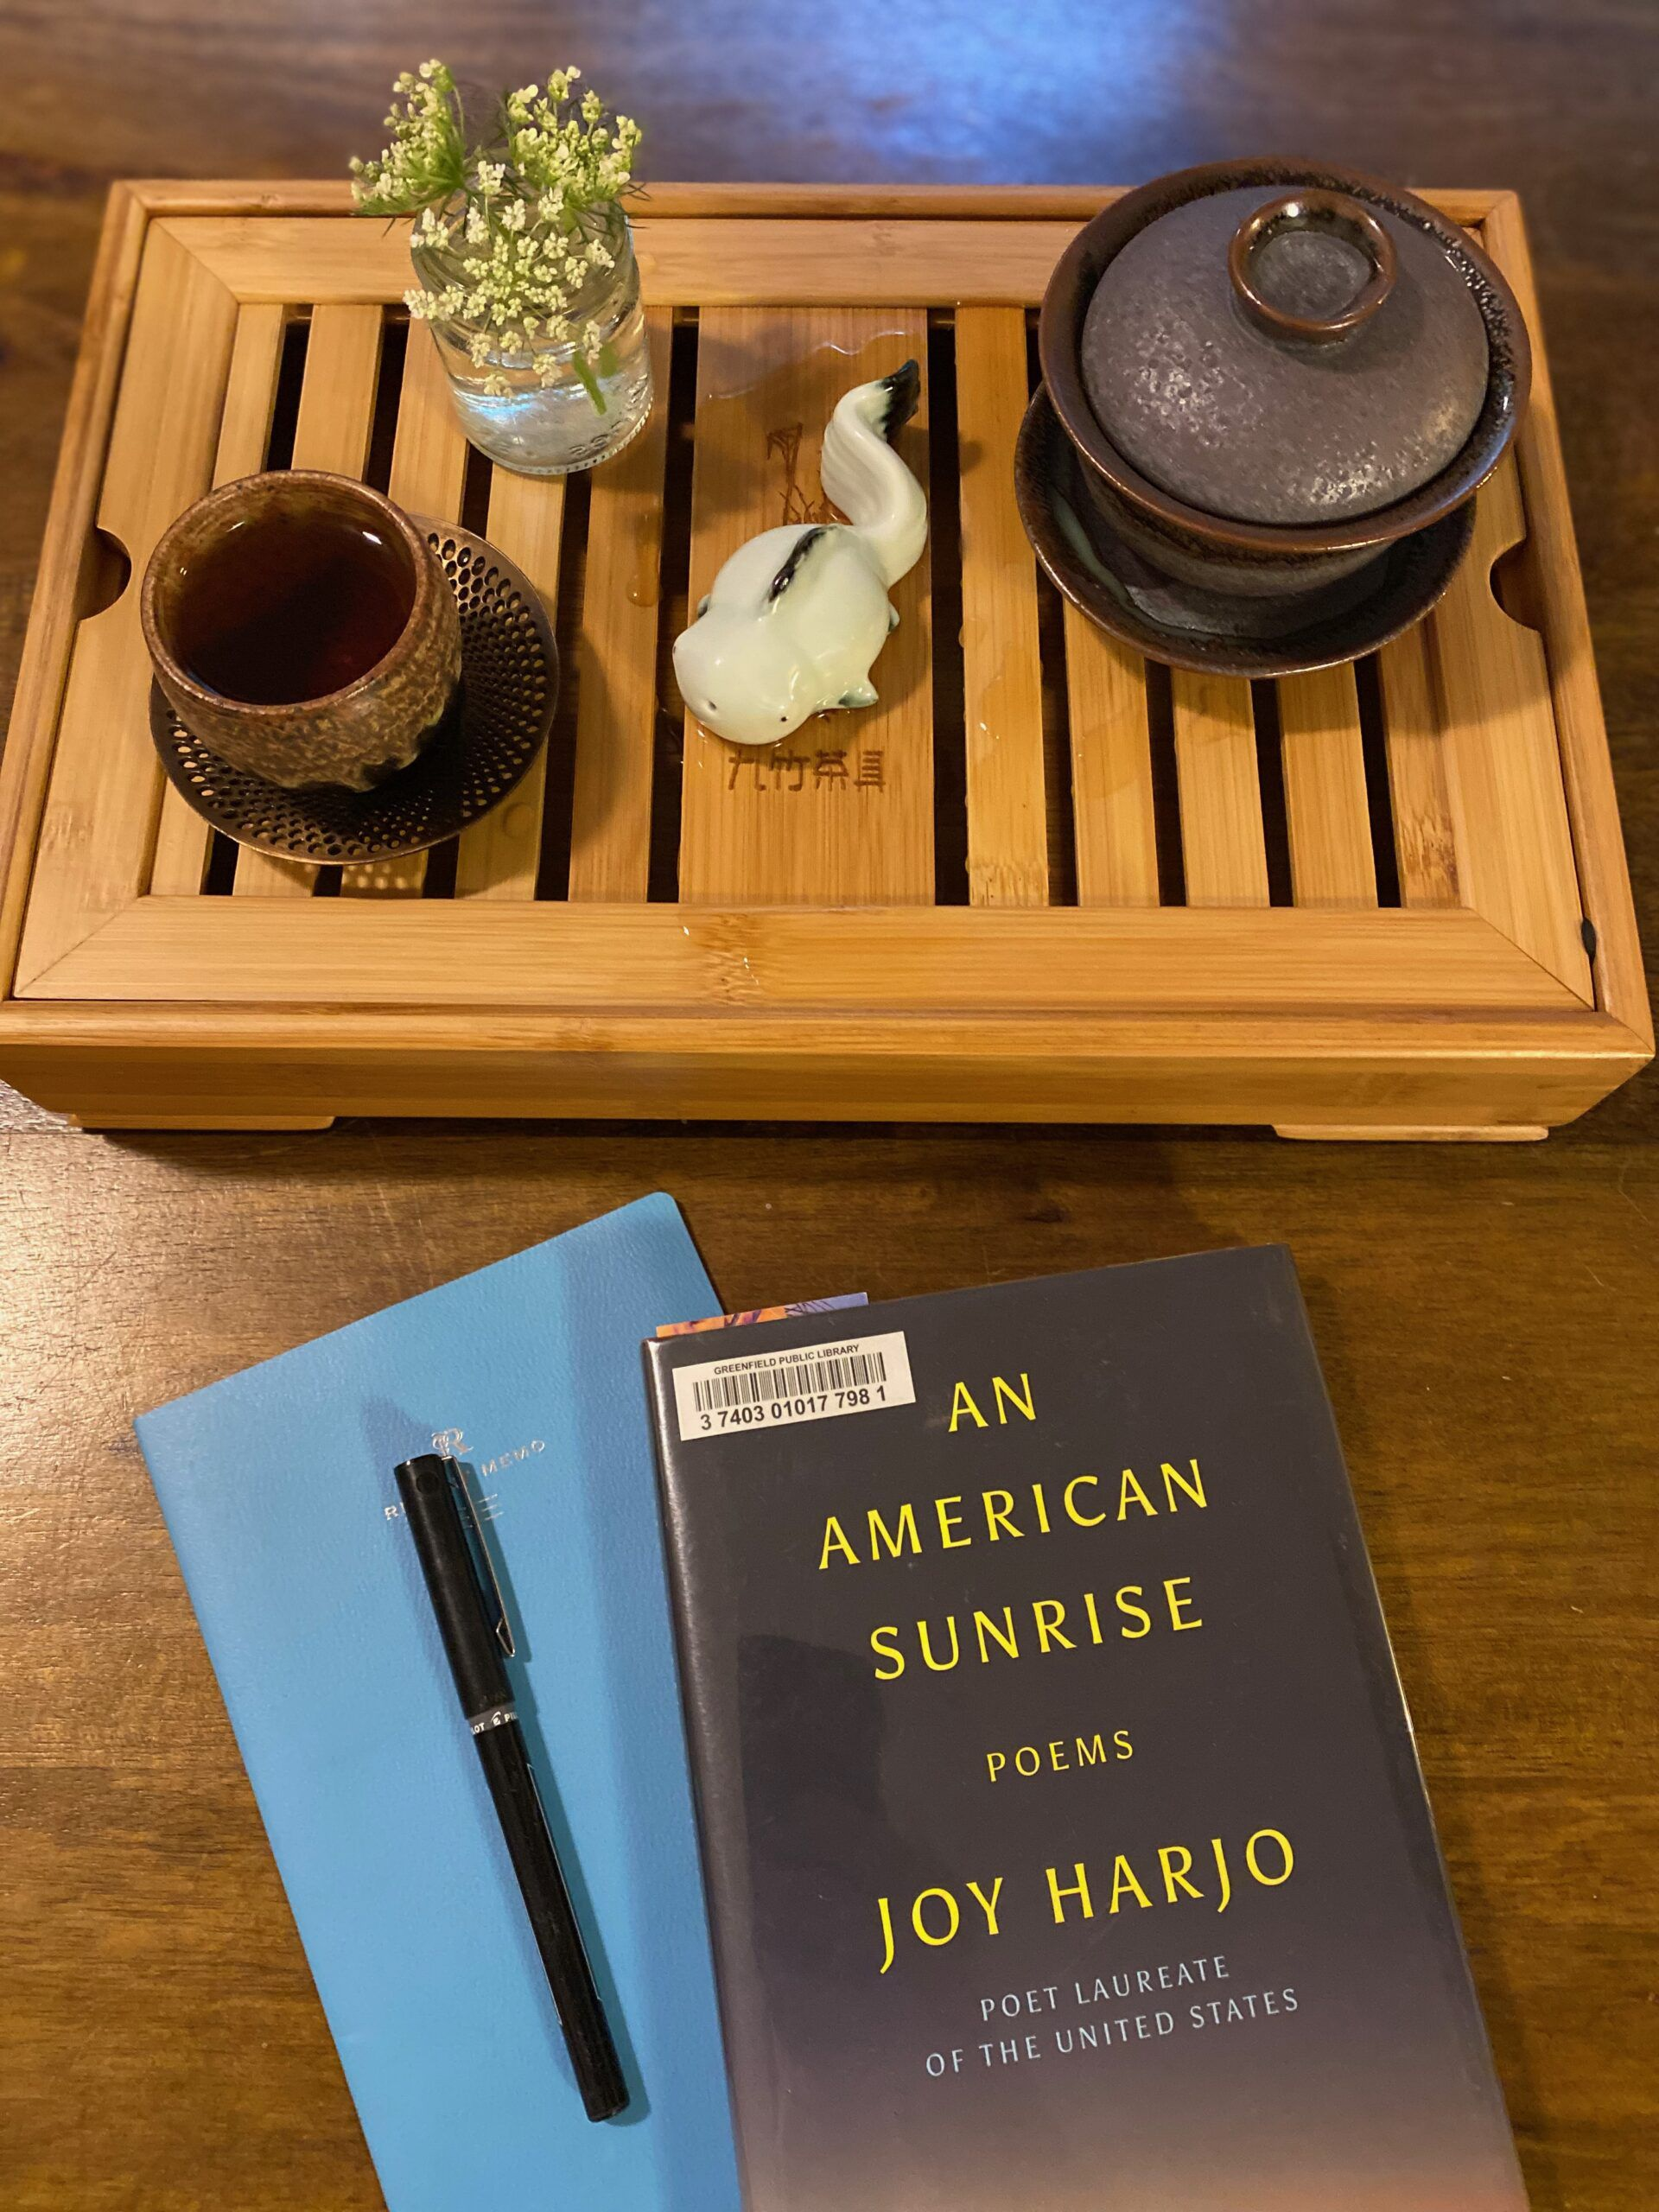 A tea setup on a wooden tray with open slats: a small ceramic mug on a metal coaster, a goldfish tea friend, a small jar of Queen Ann's lace, and a small Gaiwan teapot. A blue notebook and An American Sunrise by Joy Harjo sit on the table in front of the teaware. Photo by me.